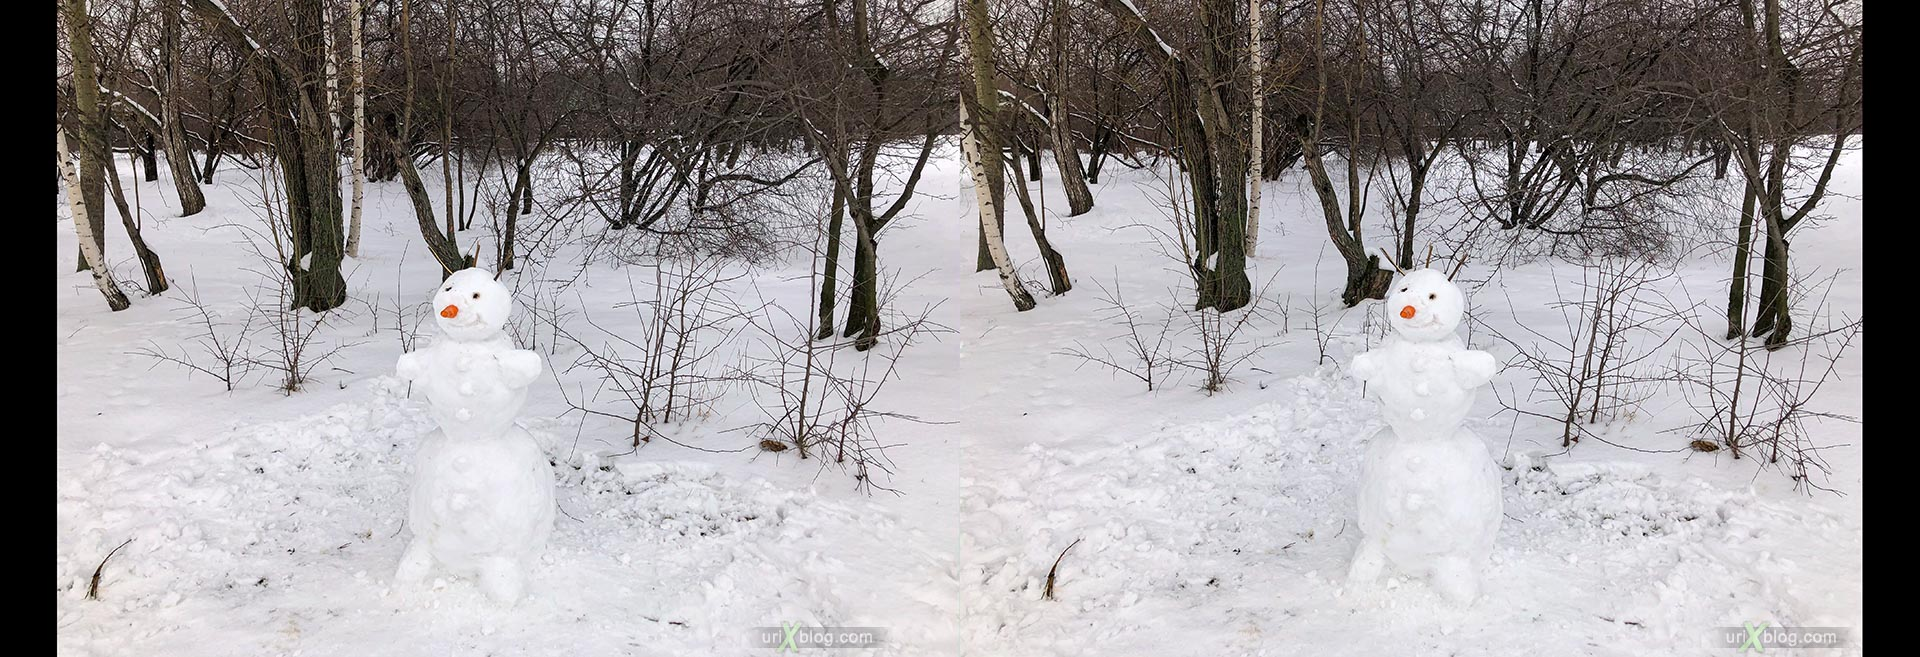 snowman, Kolomenskoye park, winter, snow, Russia, 3D, stereo pair, cross-eyed, crossview, cross view stereo pair, stereoscopic